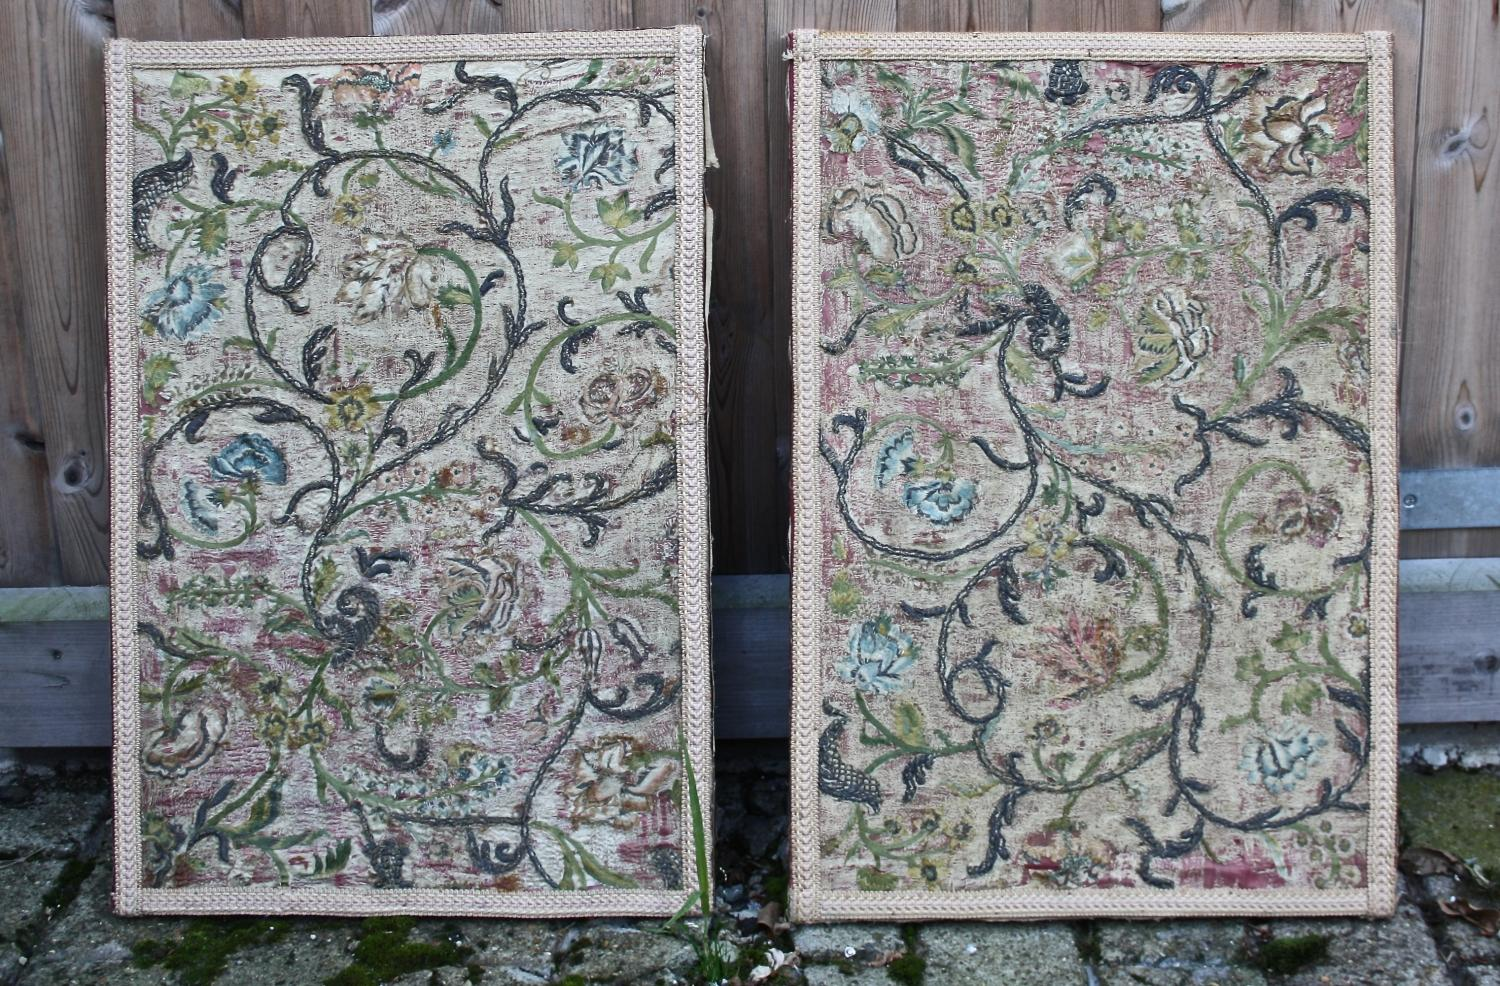 Pair of panels with C17th/18th fabric